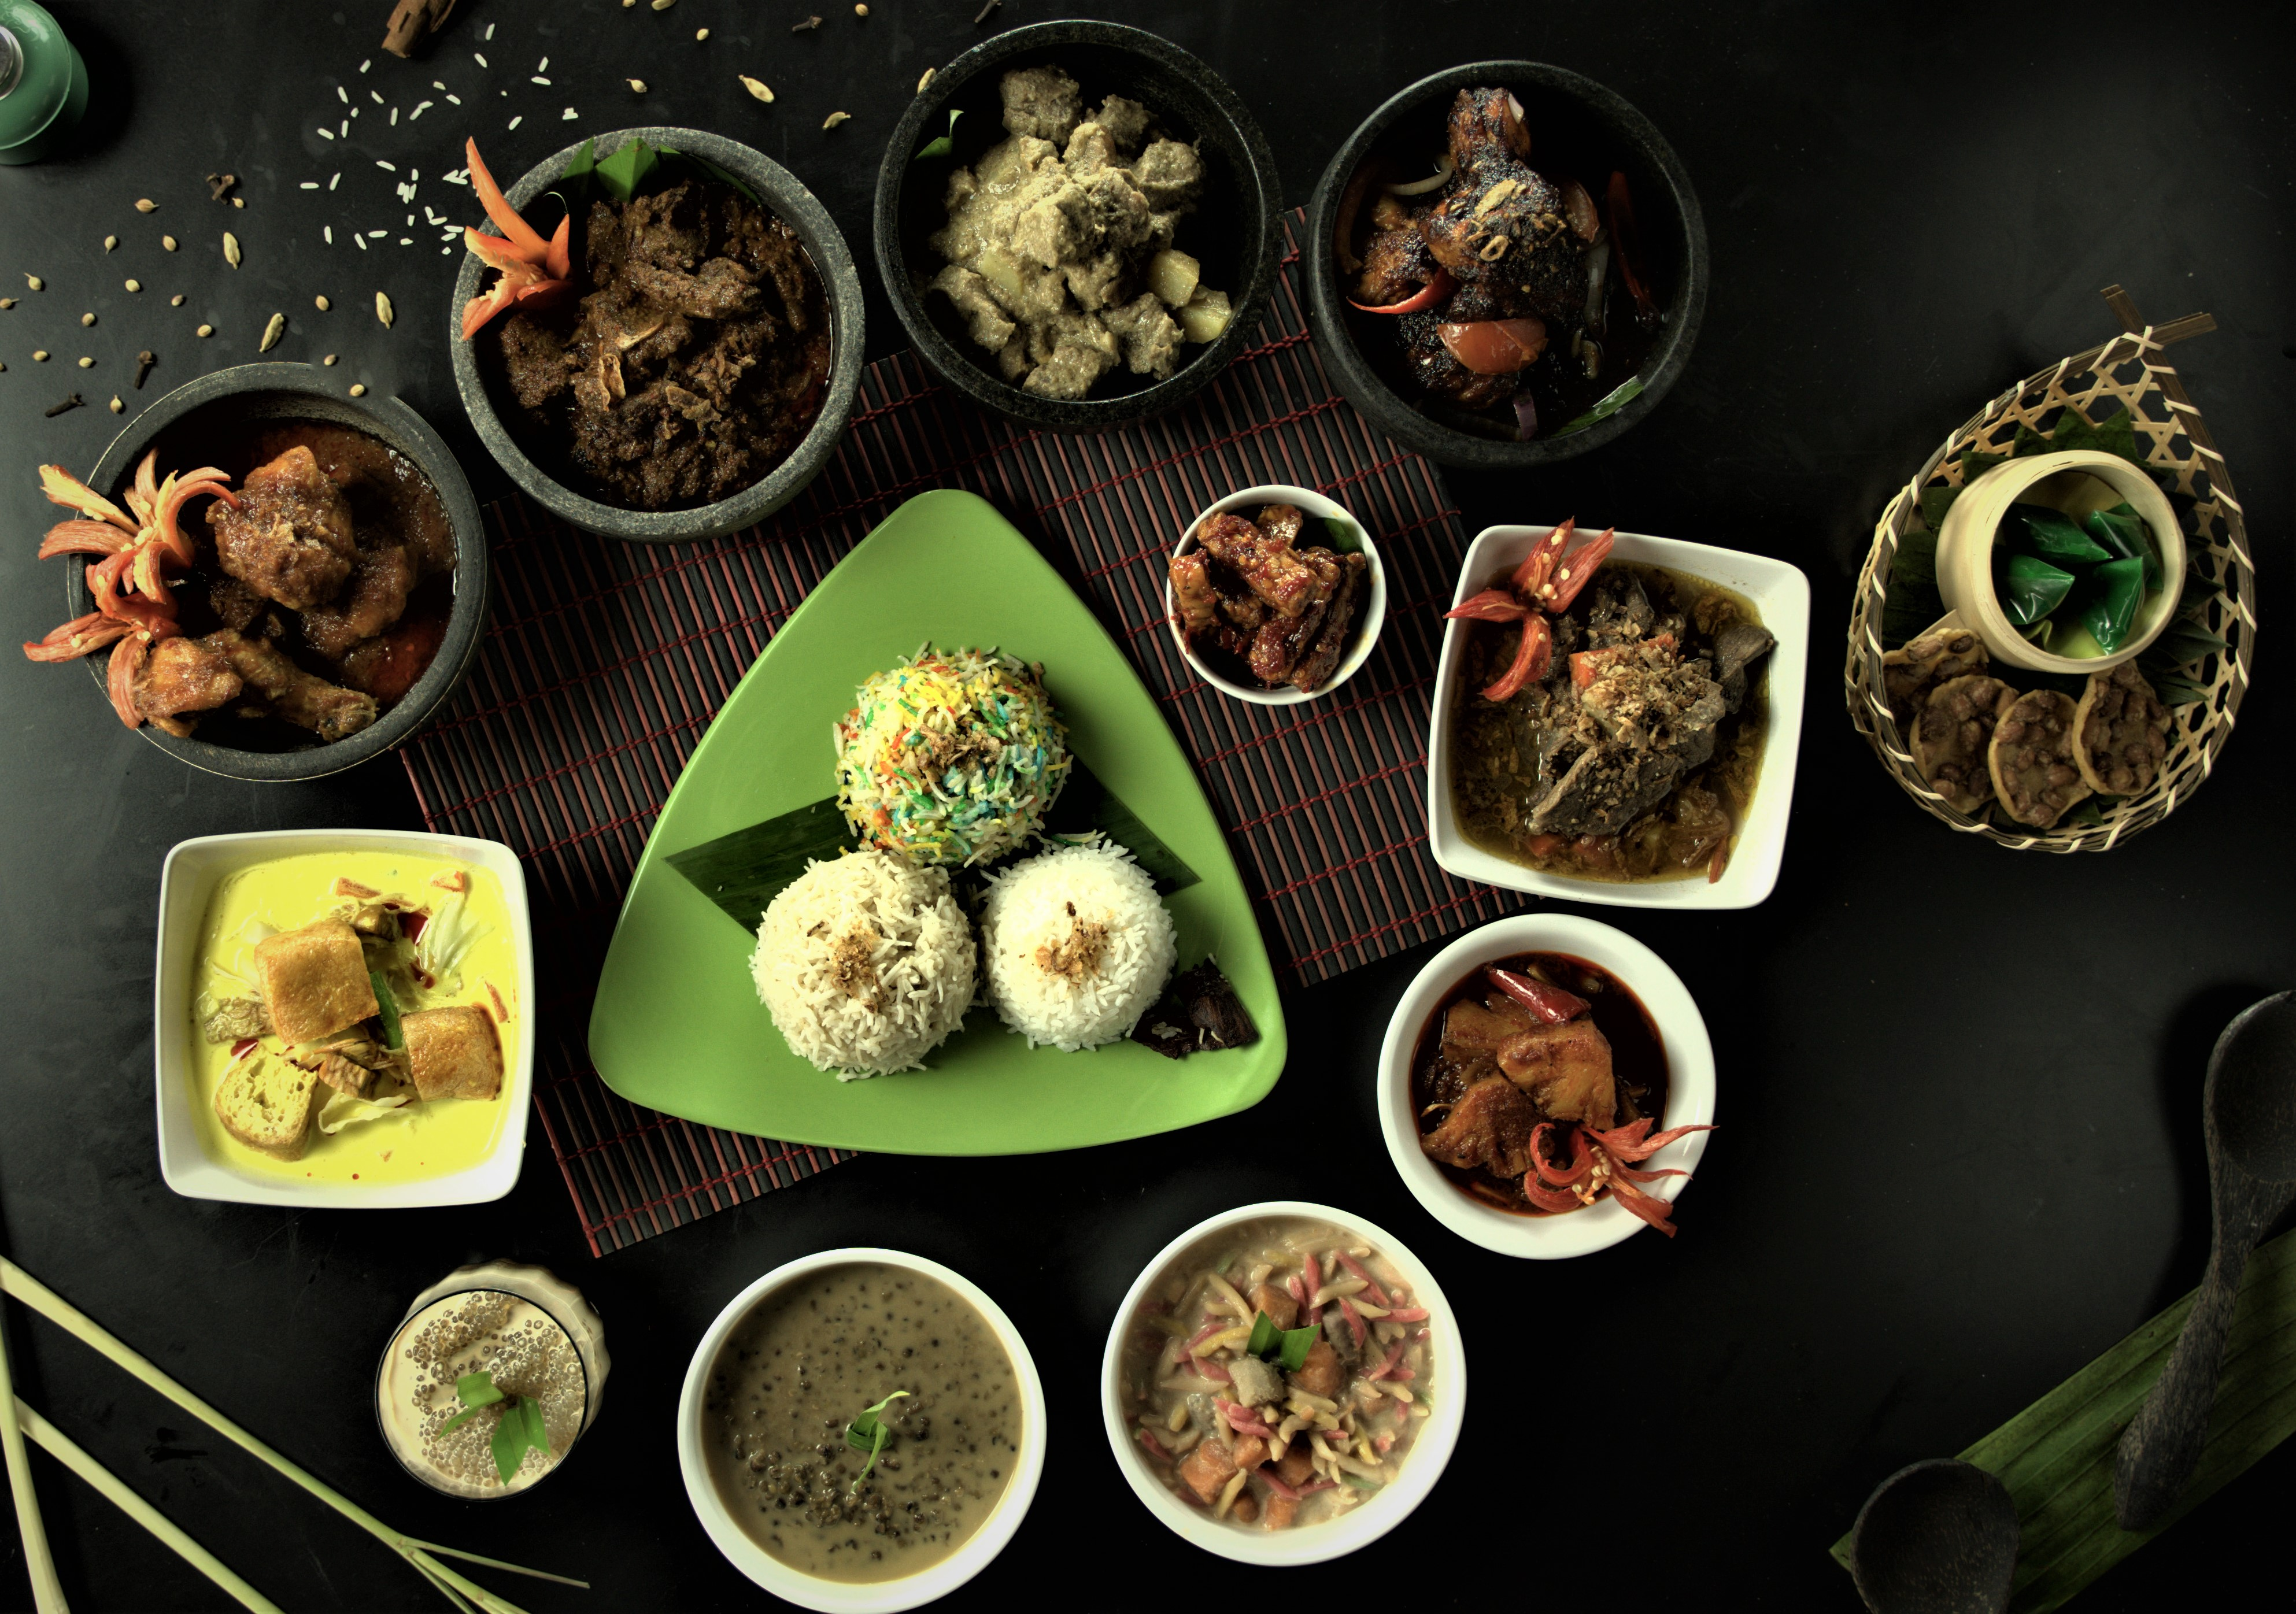 Hotel Maya Delivers A 'Simfoni' Of Flavours In Its Raya Menu